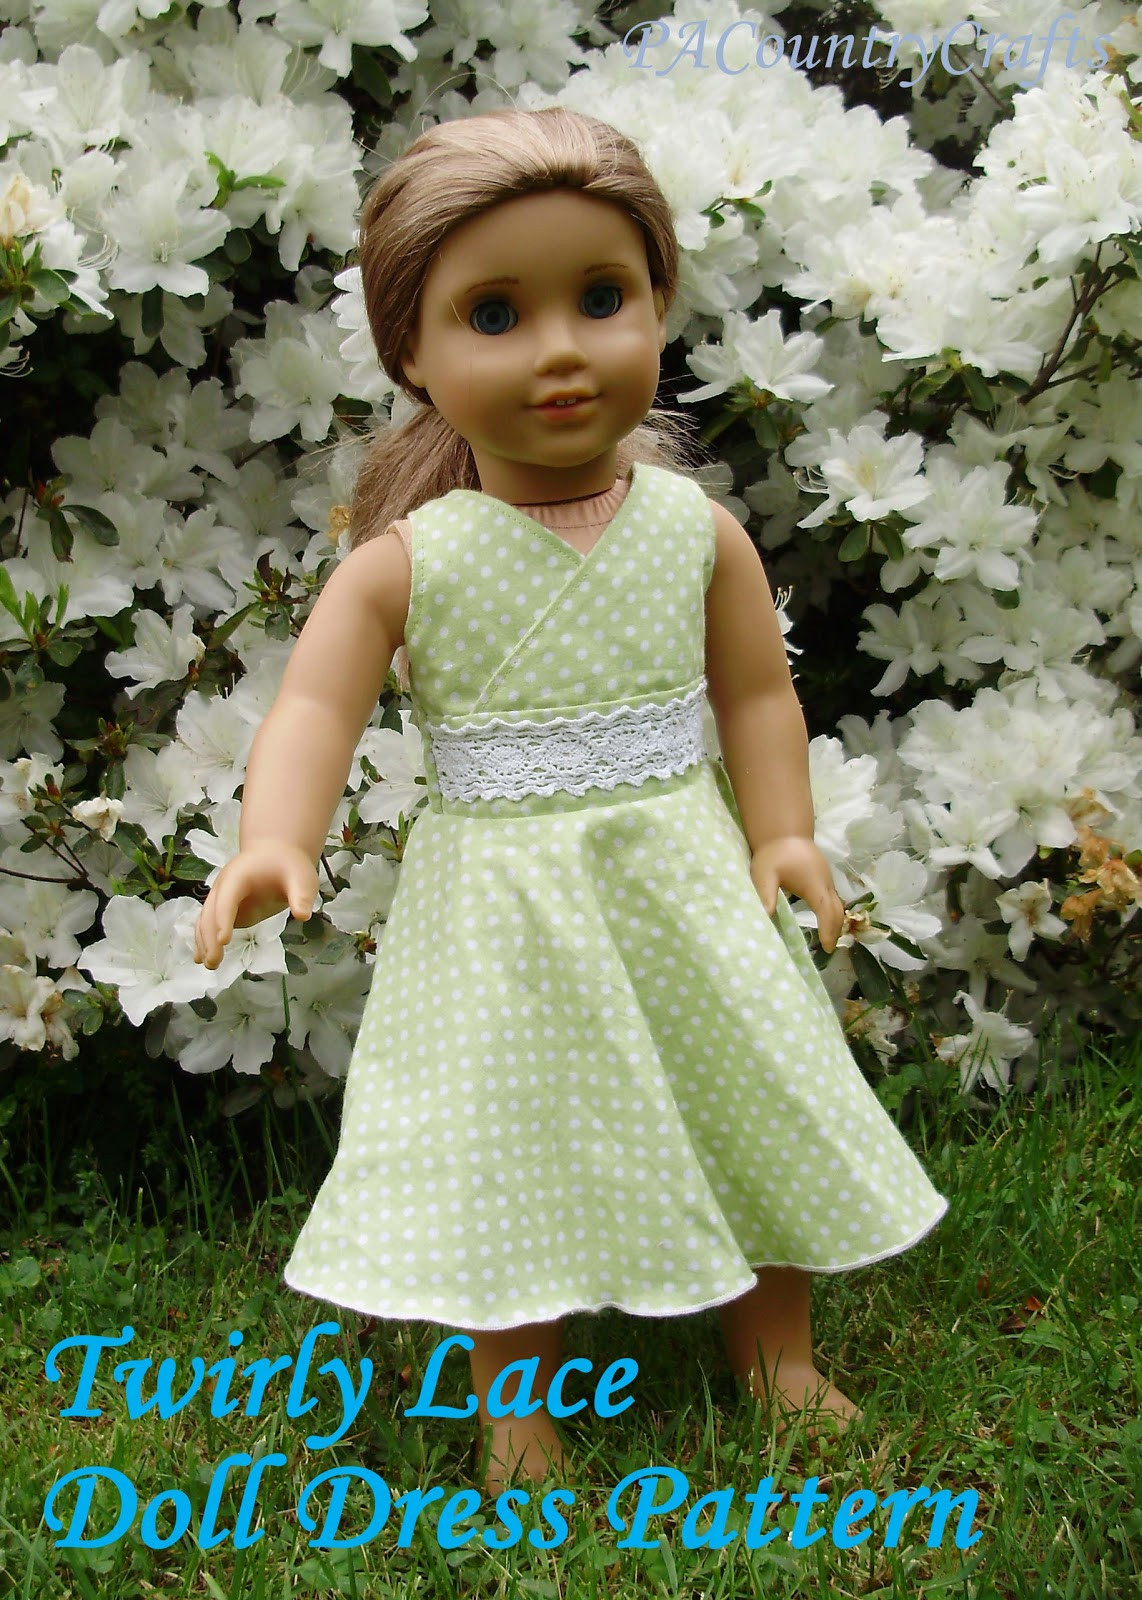 Doll Patterns Unique Twirly Lace Doll Dress Pattern Of Doll Patterns Best Of Gingermelon Dolls My Felt Doll Knitted Outfit Patterns